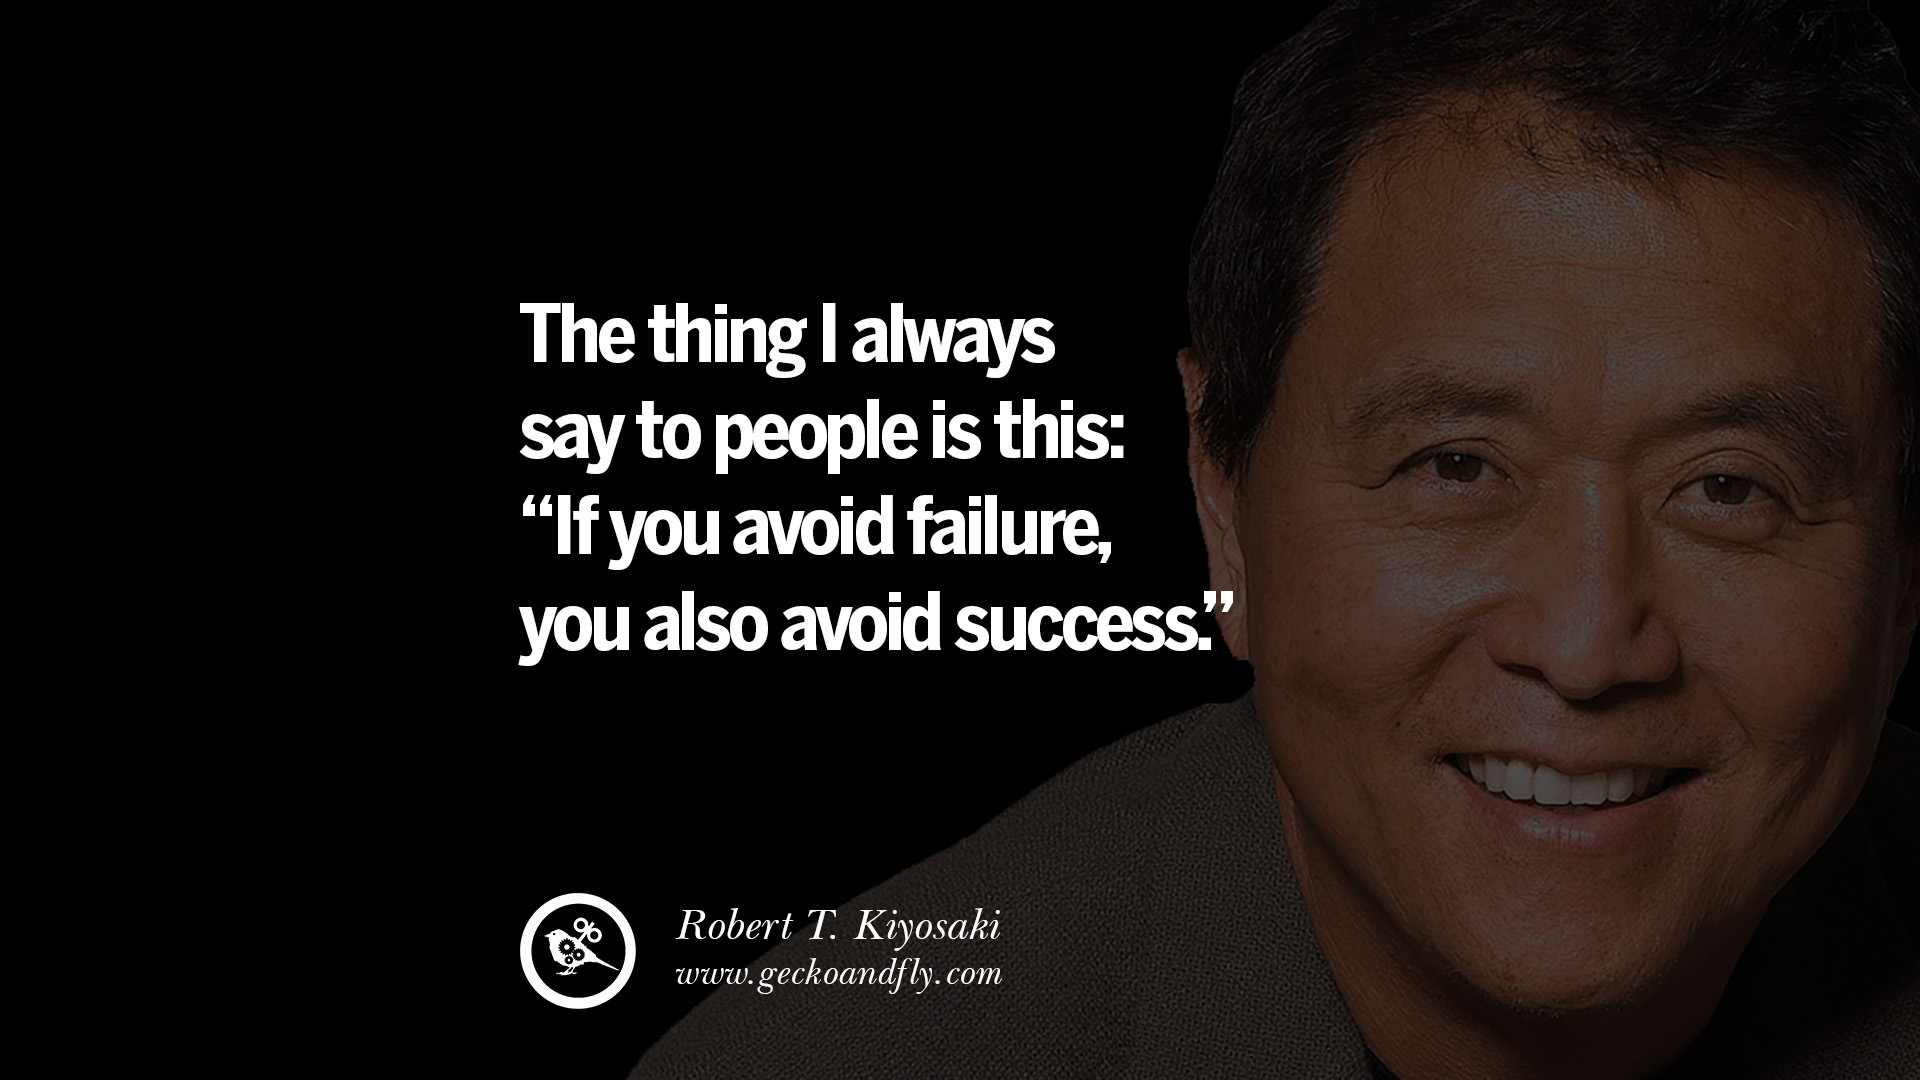 Robert Kiyosaki Libros Pdf 20 Motivational Robert T Kiyosaki Quotes For Selling